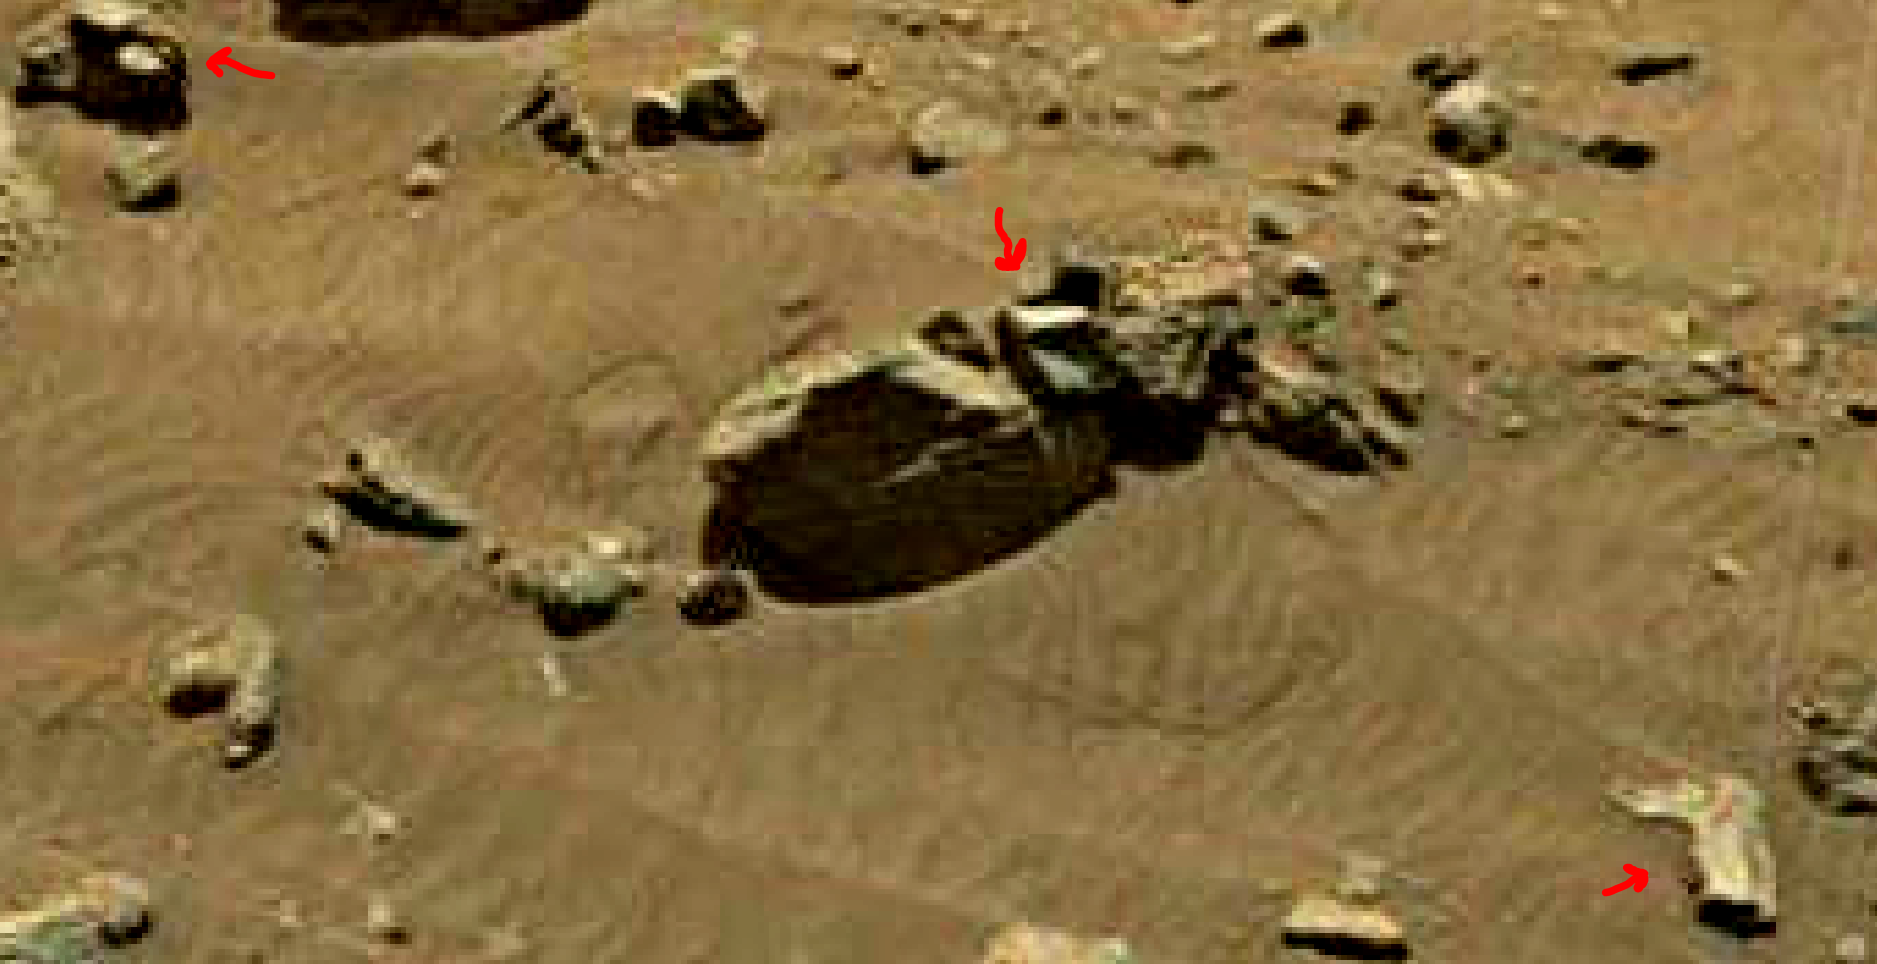 mars sol 1399 anomaly artifacts 15a was life on mars